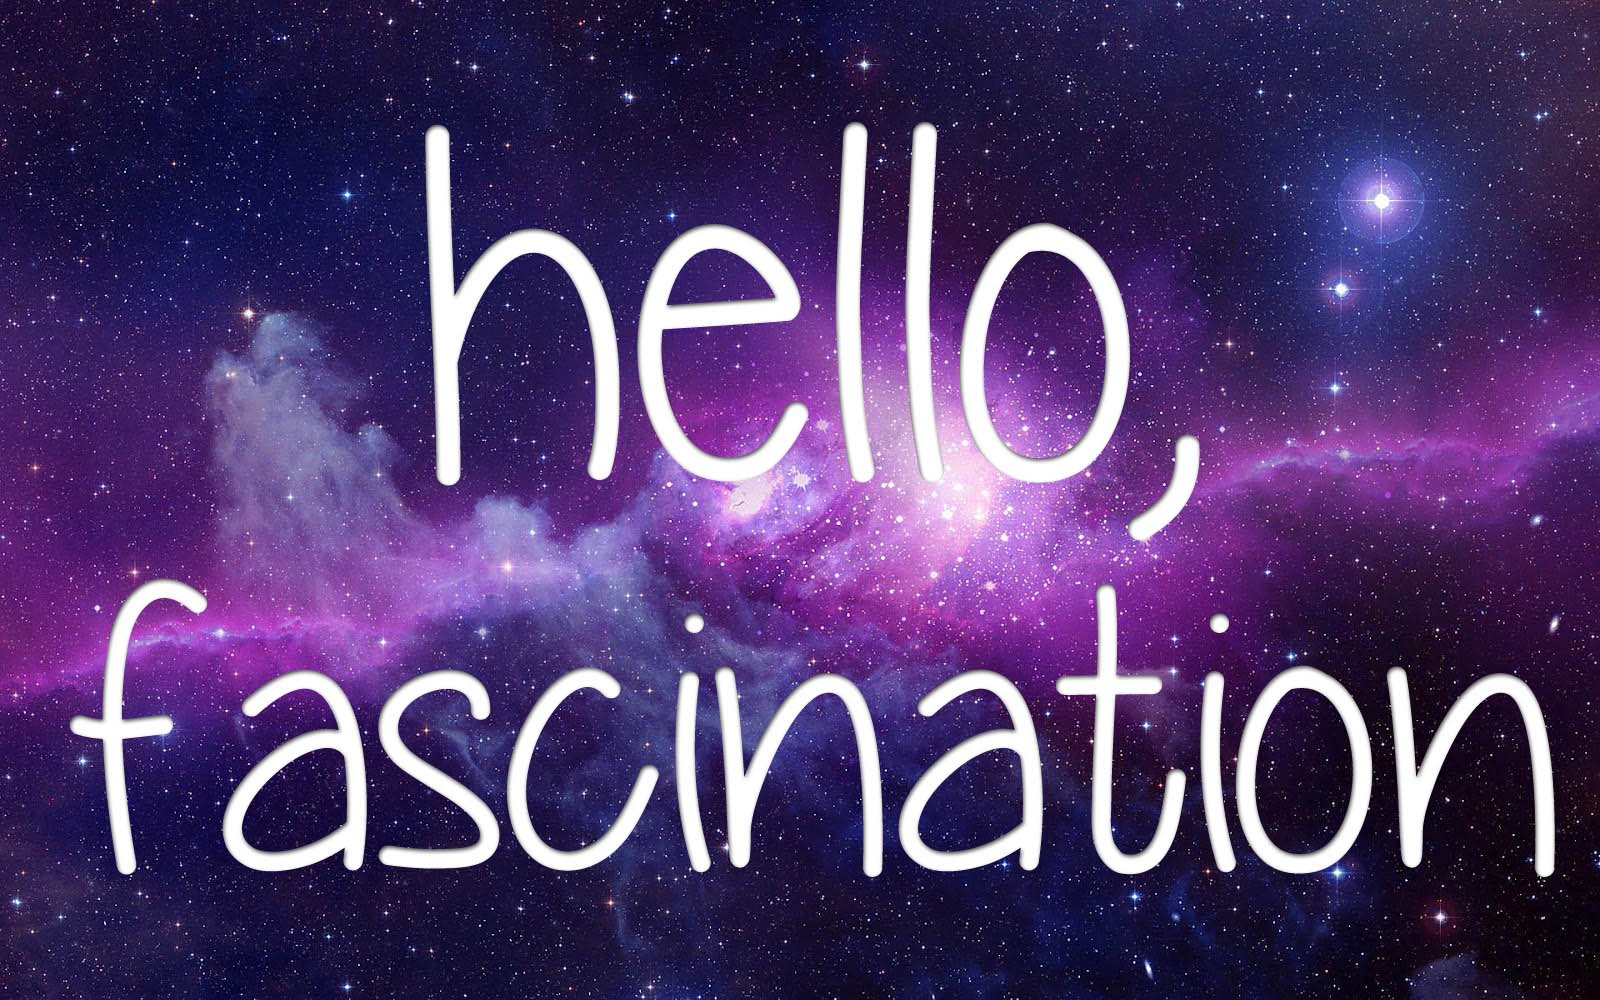 Kristazzi: Day 25 - Hello Fascination